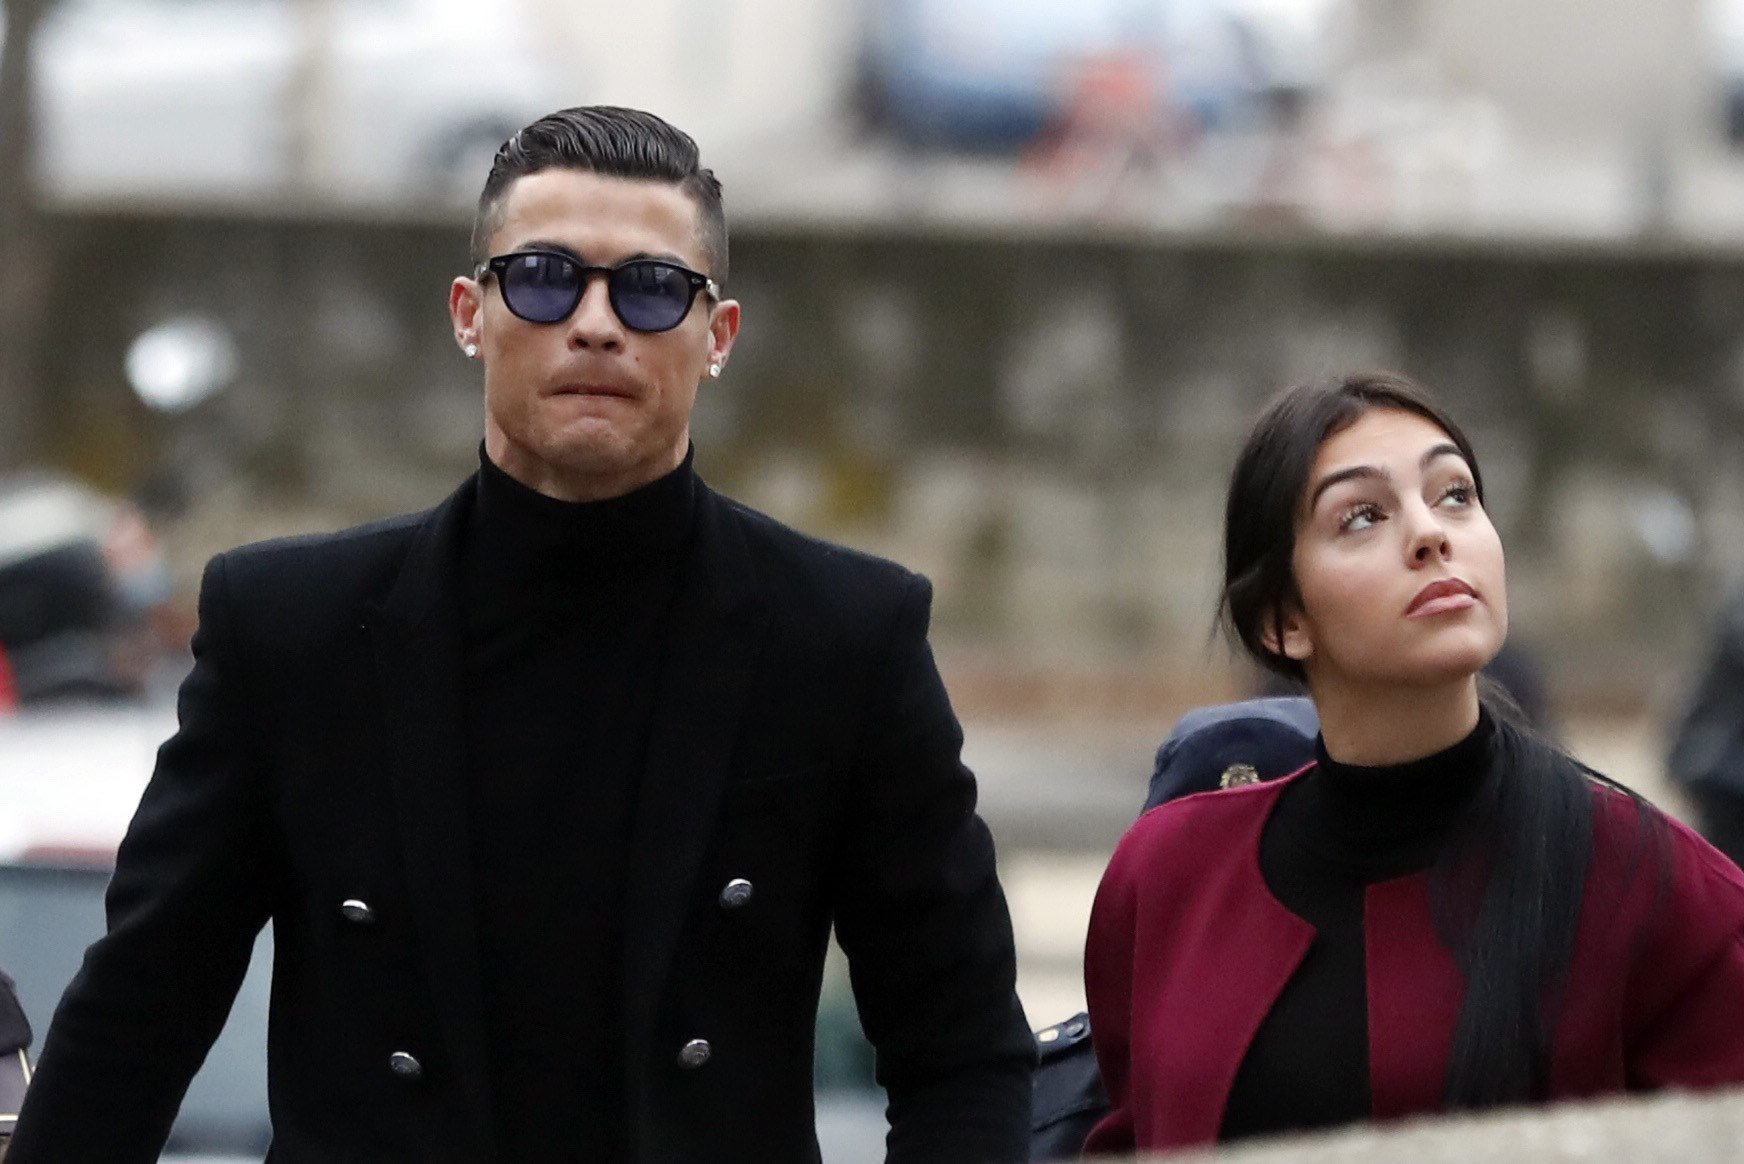 epa07308251 Juventus FC forward Cristiano Ronaldo (L) and his partner Georgina Rodriguez (R) arrive to a court in Madrid, Spain, 22 January 2019. Ronaldo is accused of four tax offenses. EPA/JAVIER LIZON